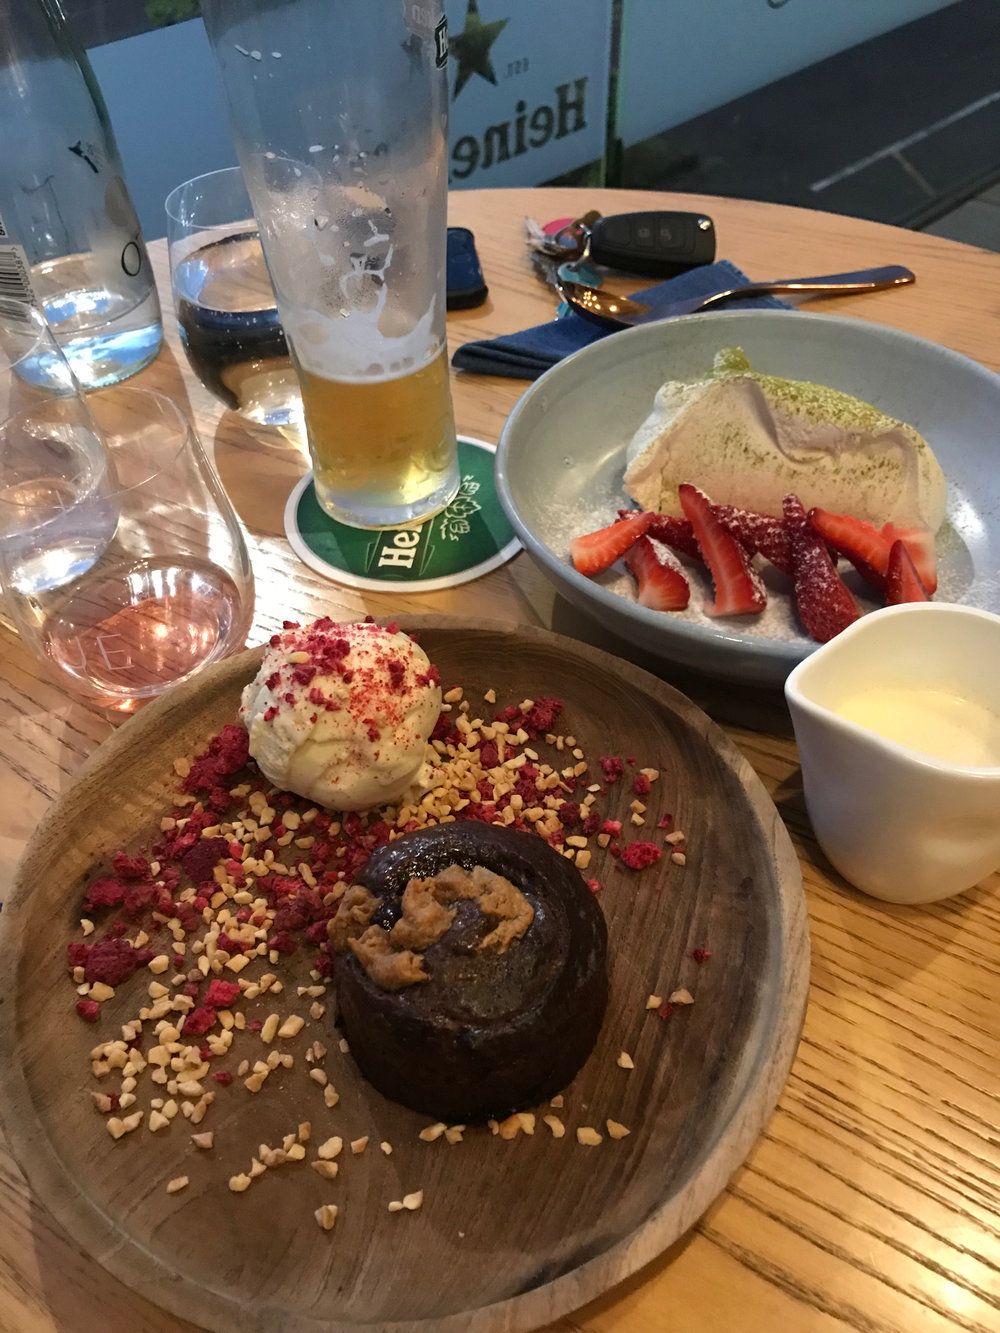 Lauren Meale found this delicious spot for dessert